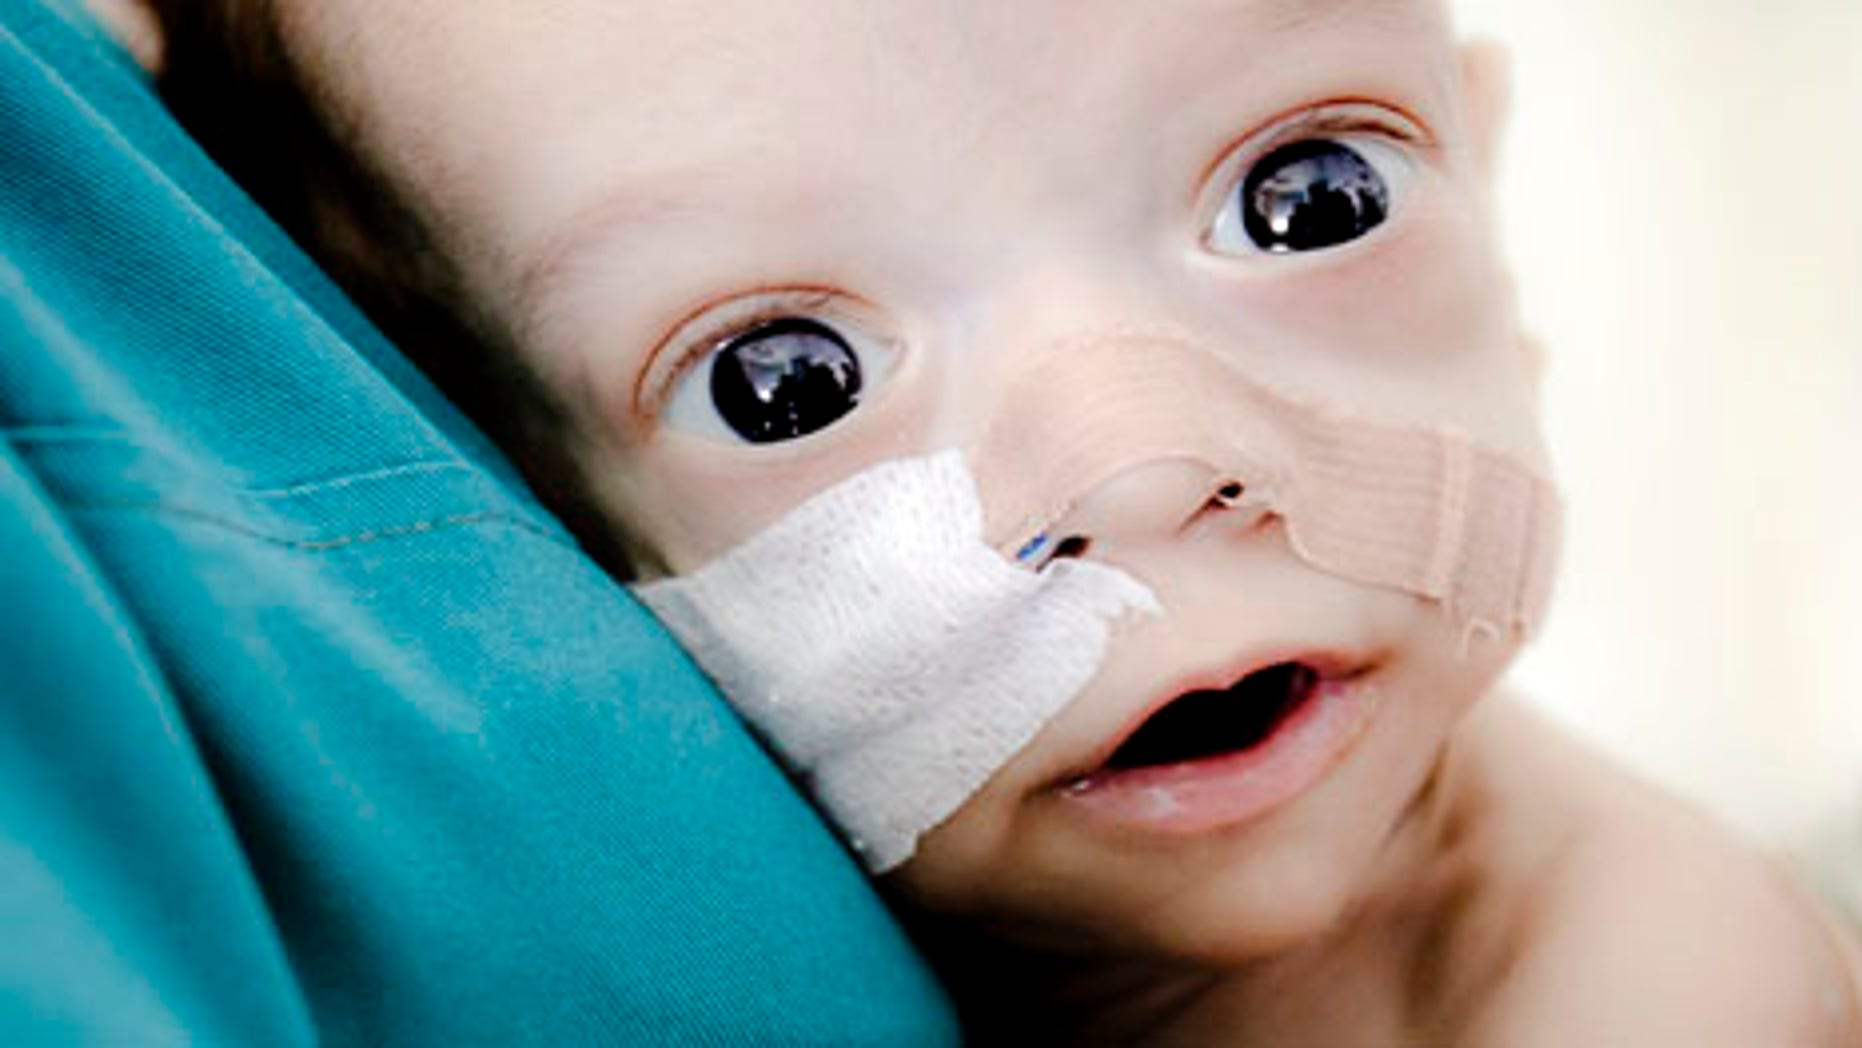 Baby Andrei, a Romanian baby born with virtually no intestines who confounded doctors by clinging to life and captured international attention for his fighting spirit, has died. (AP Photo/Vadim Ghirda, file)